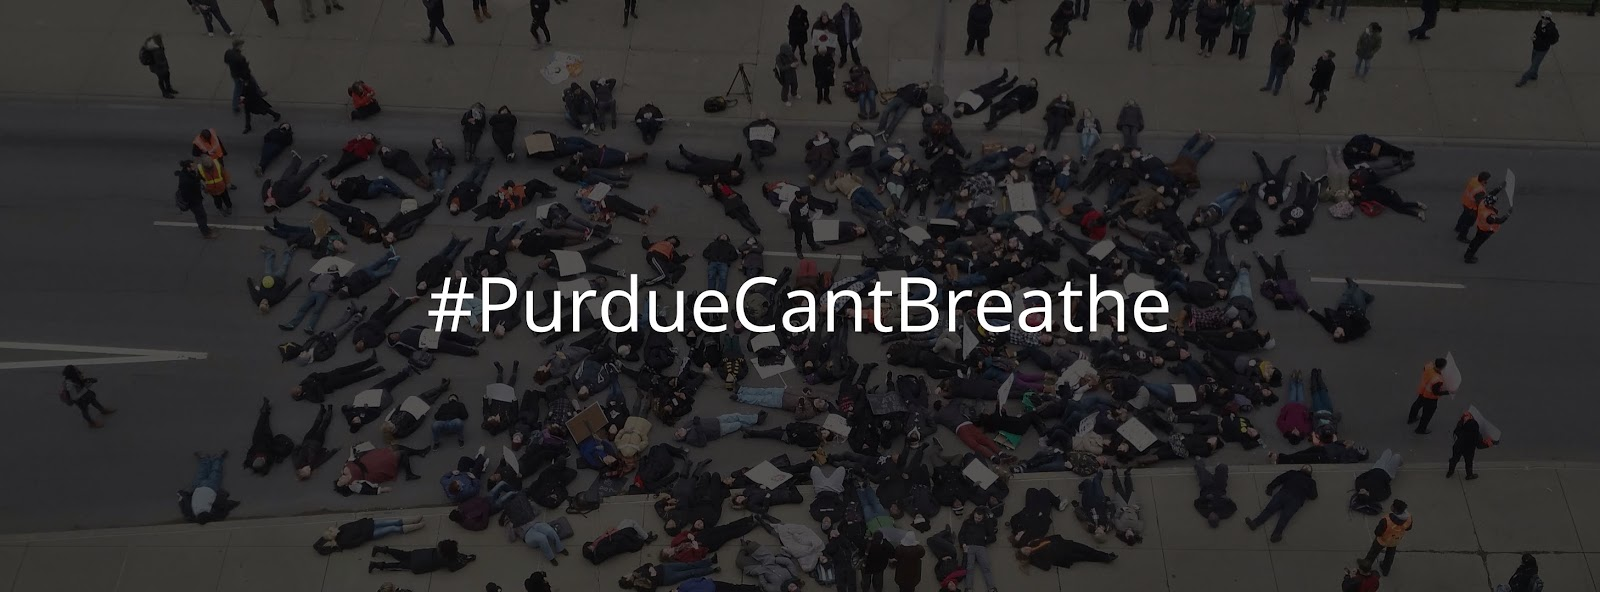 Color printing purdue - Purdue Is Known For It S Tendency Toward Racial Discrimination I Have Supported And Continue To Support The Purdue Social Justice Coalition